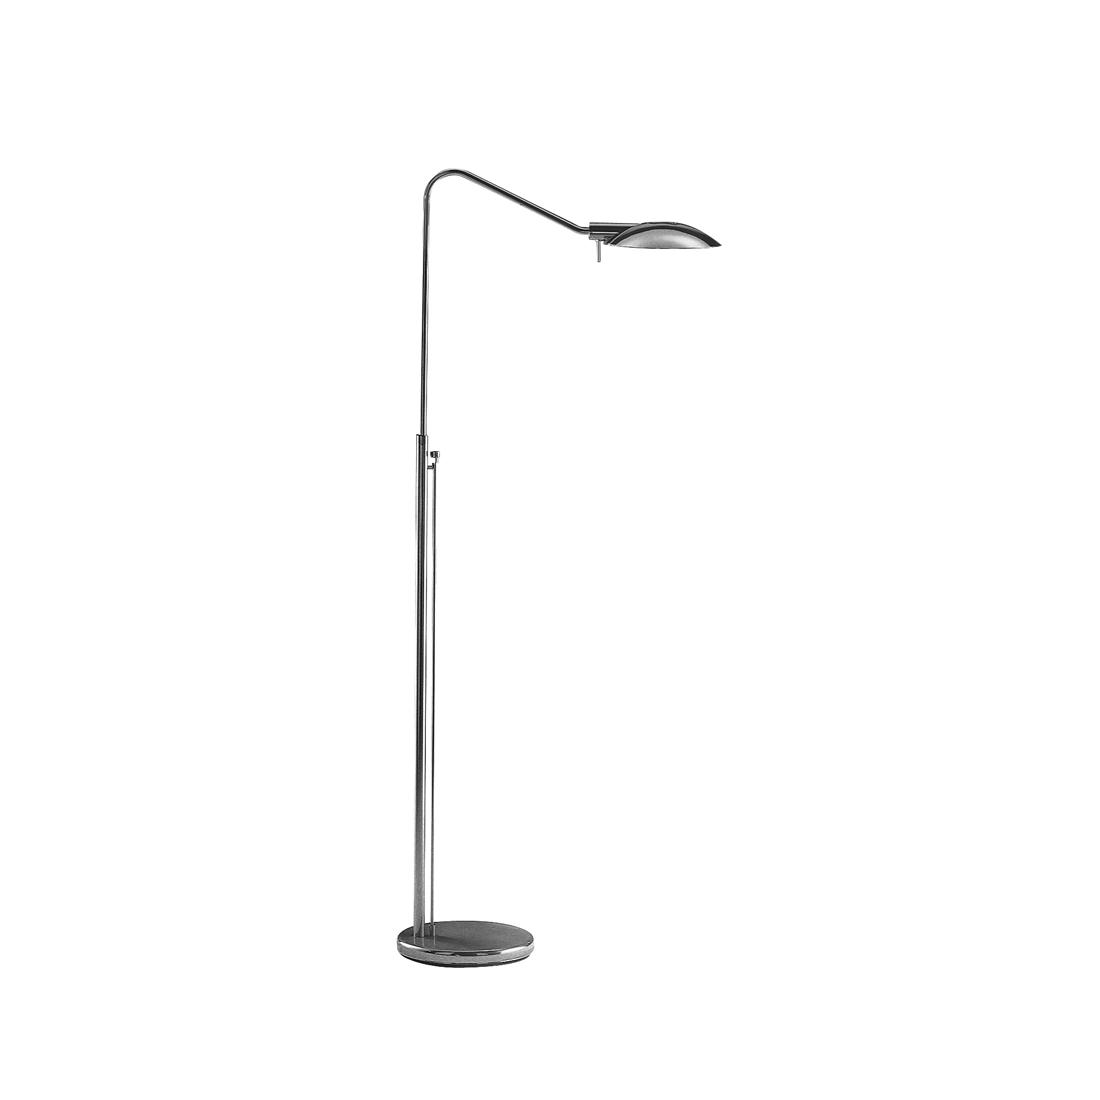 estiluz lighting. P-1062L | P-1062 Floor Lamp By Estiluz Reading Lights Lighting